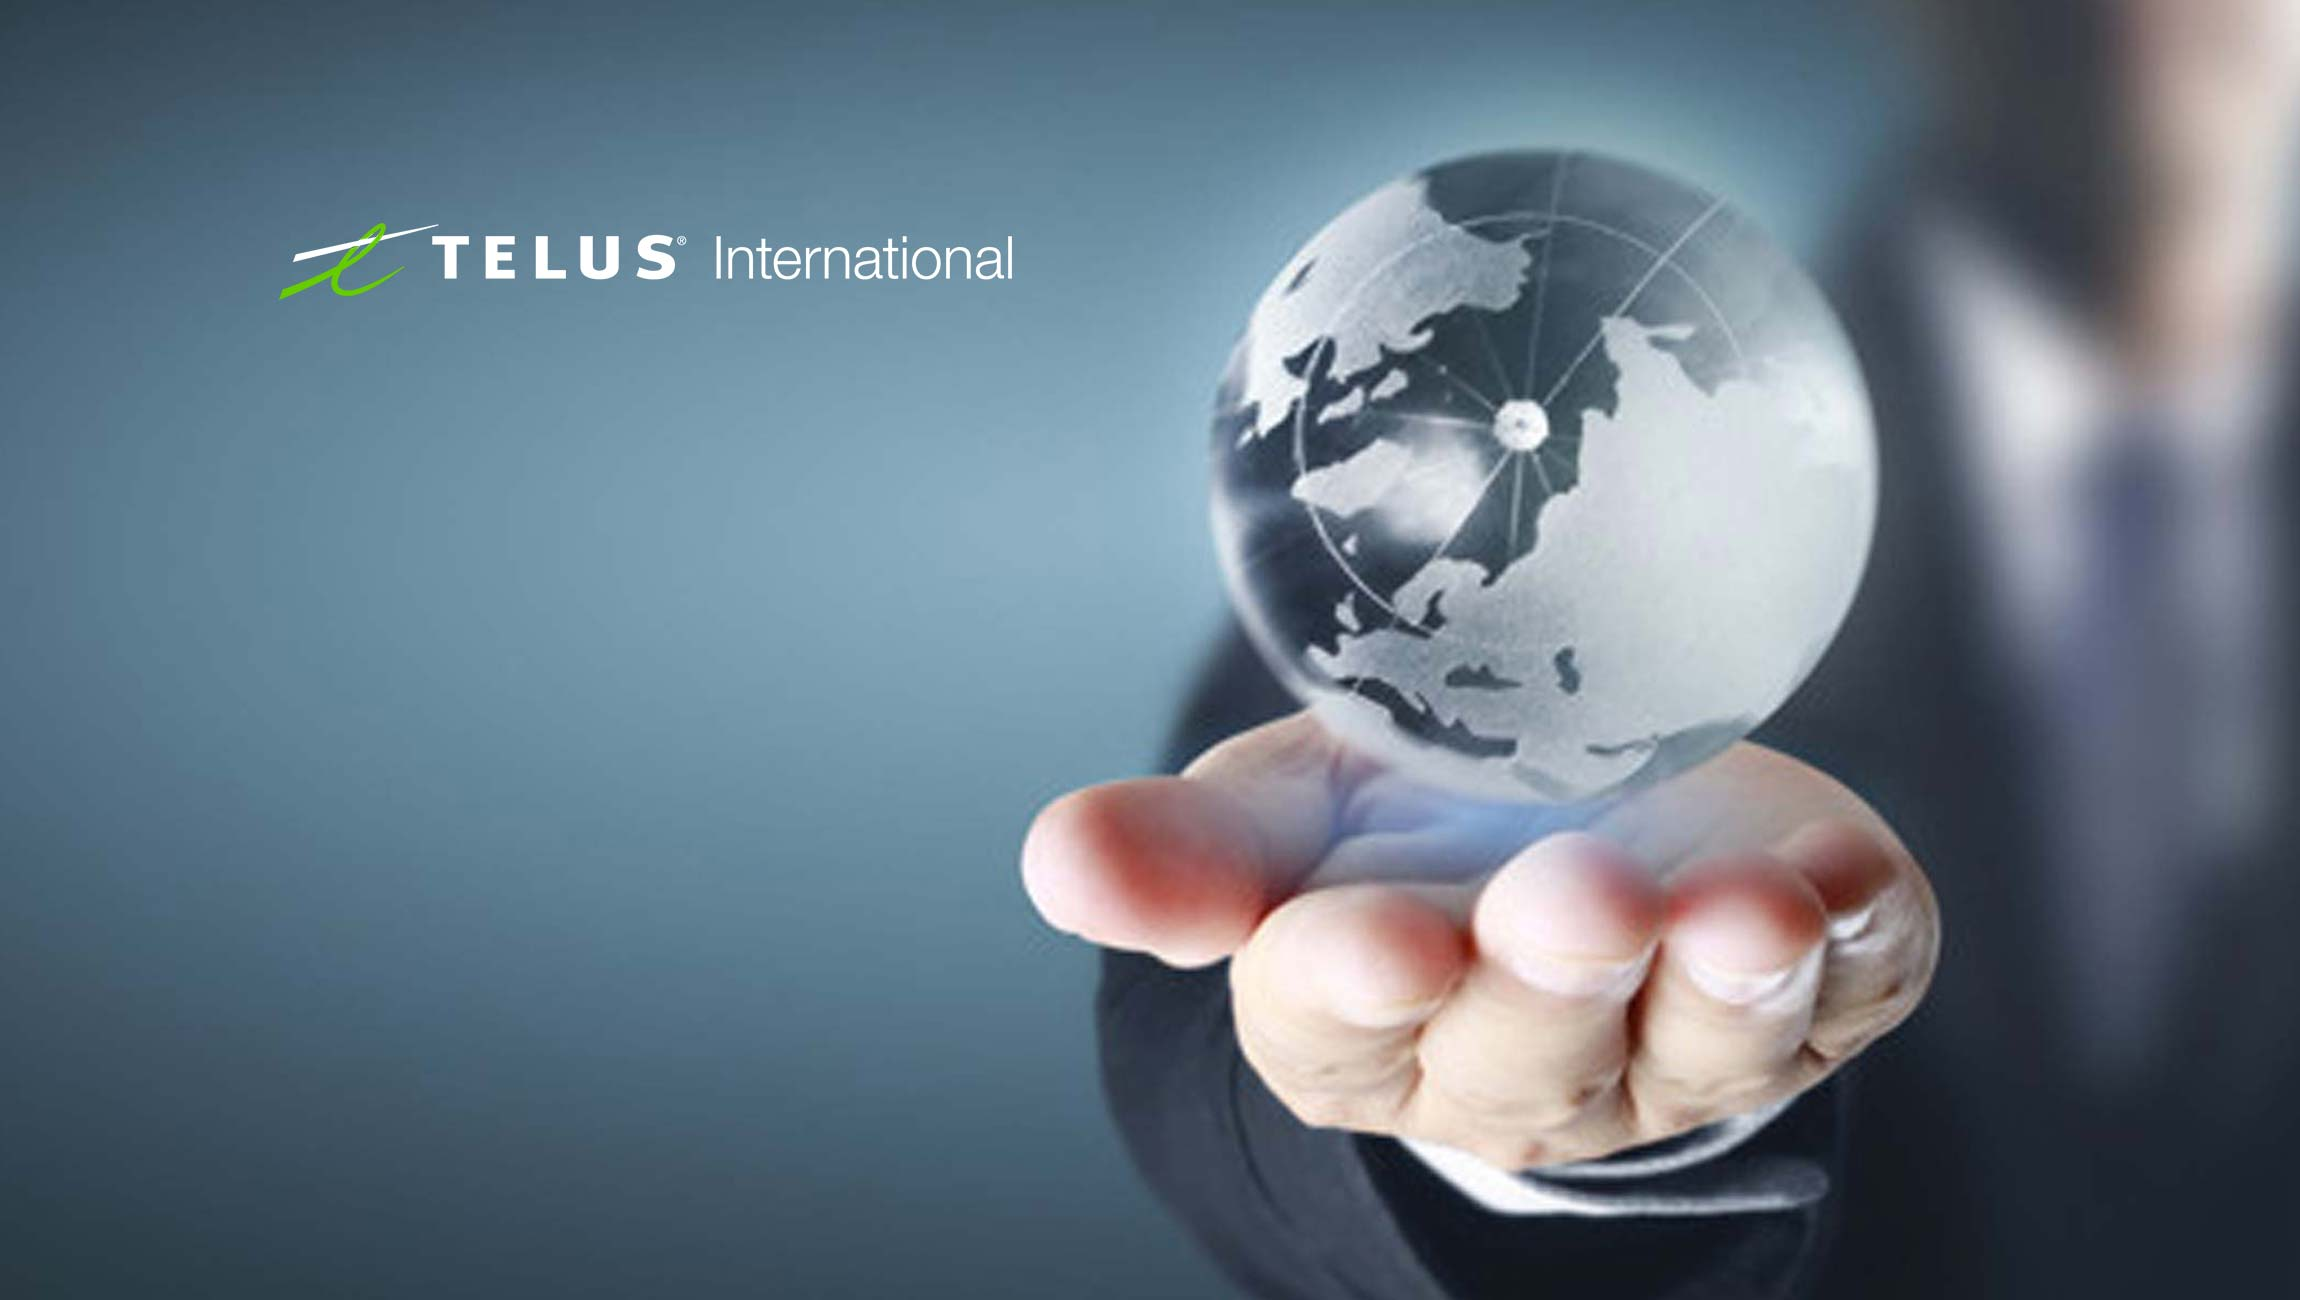 TELUS International Formally Launches Digital-Enablement Arm to Help Brands Build Effortless Customer Experiences